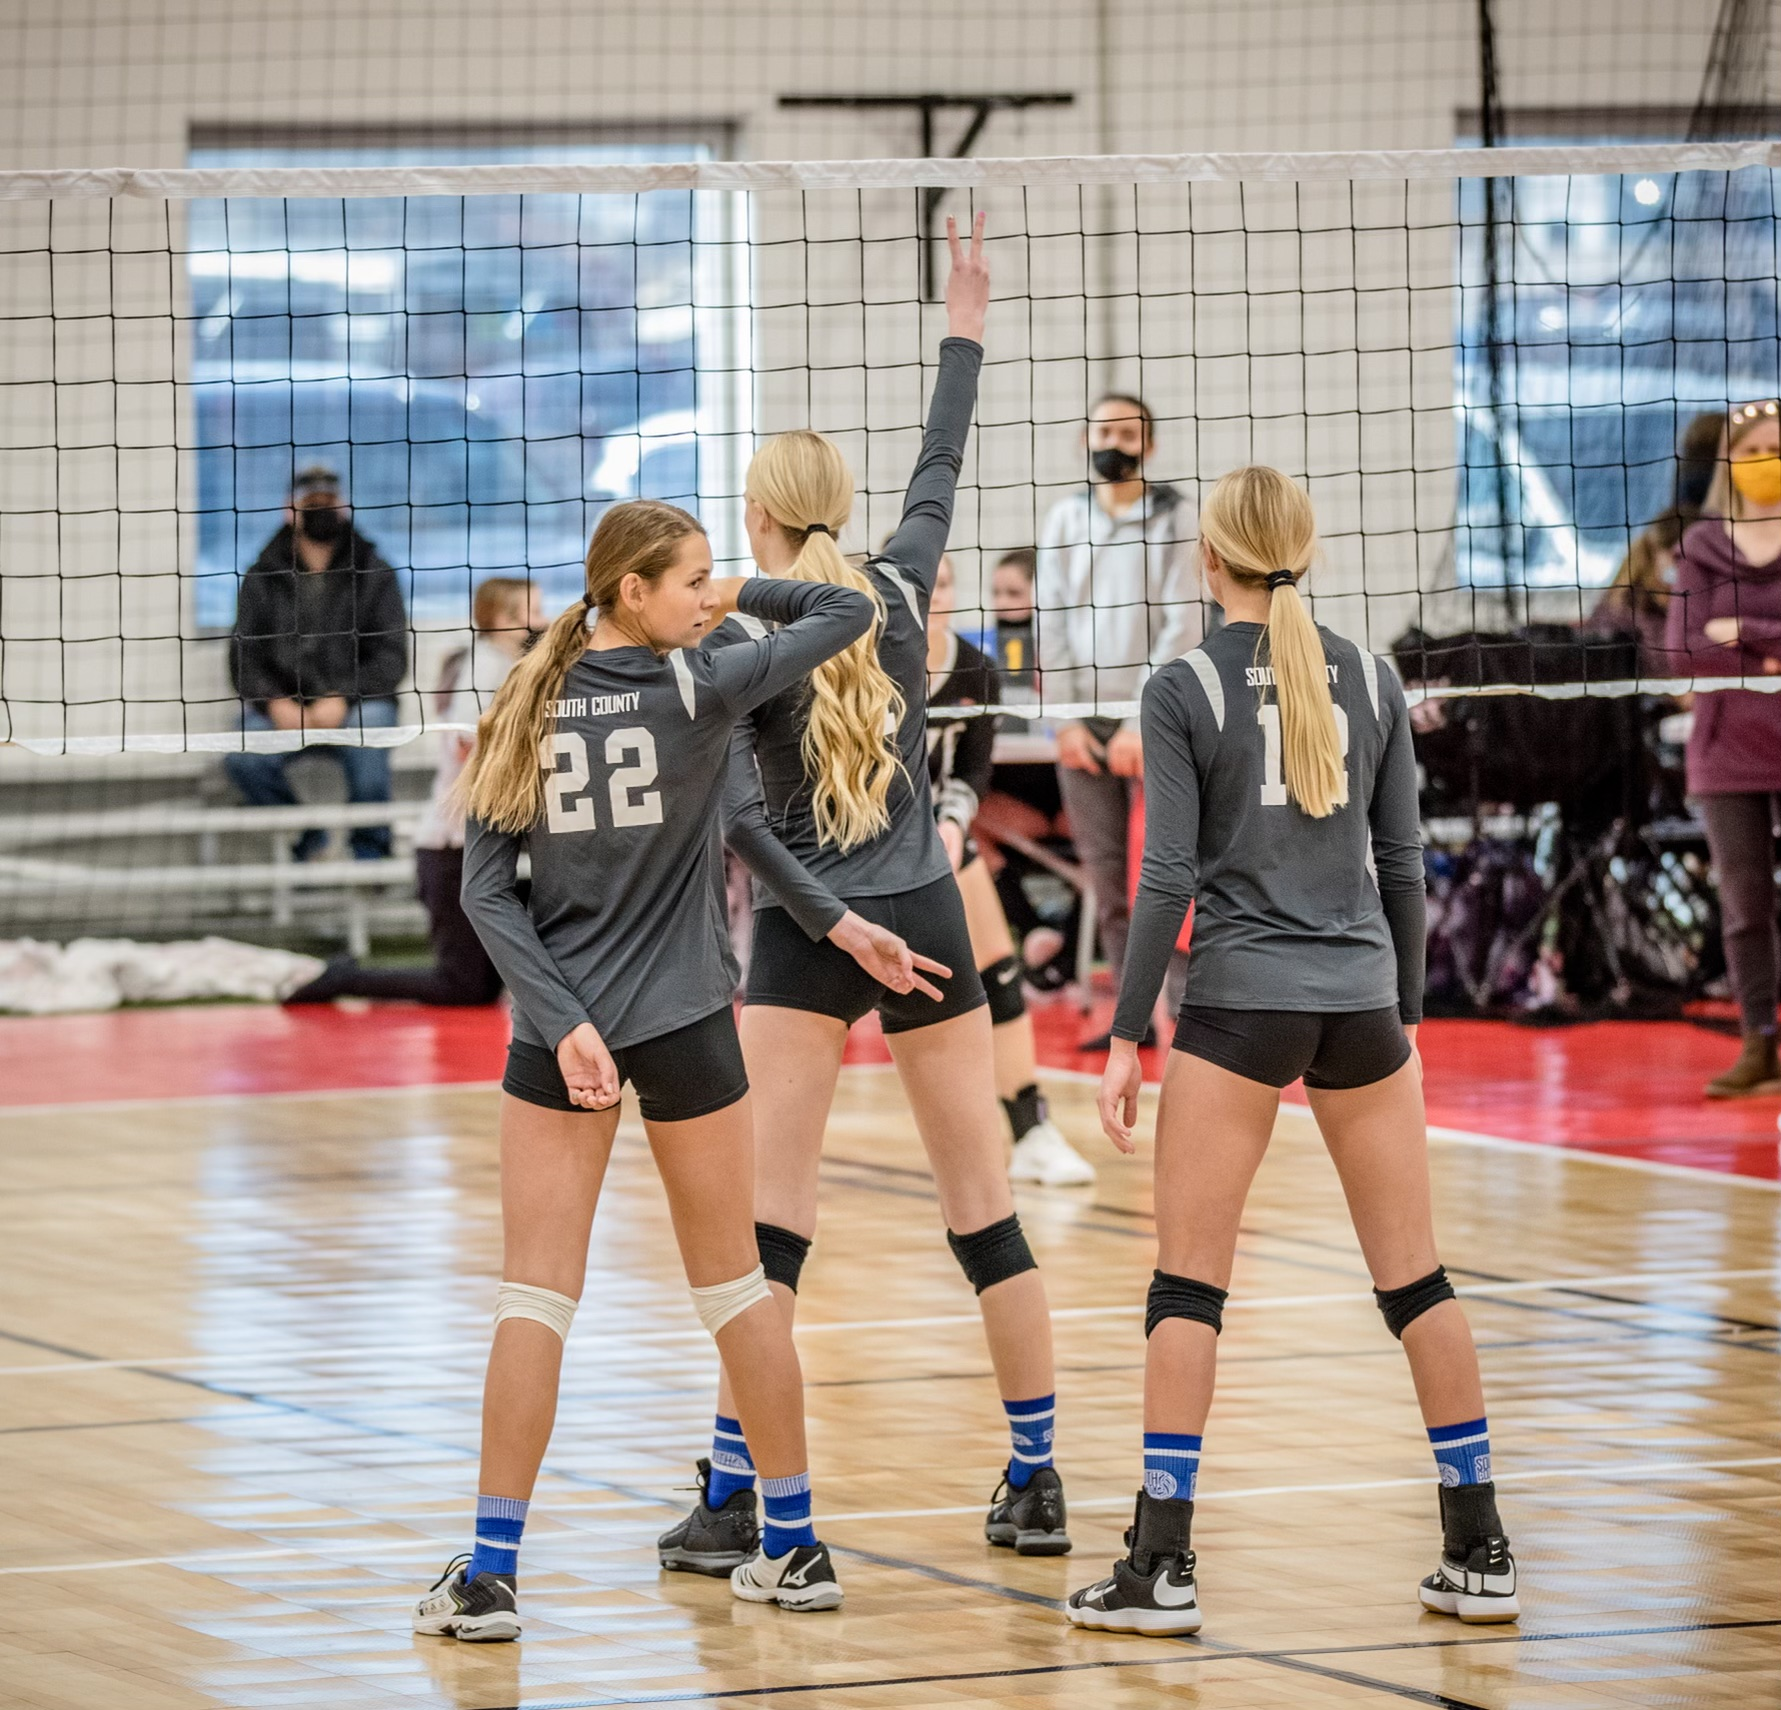 SCVC volleyball tournament on court with net